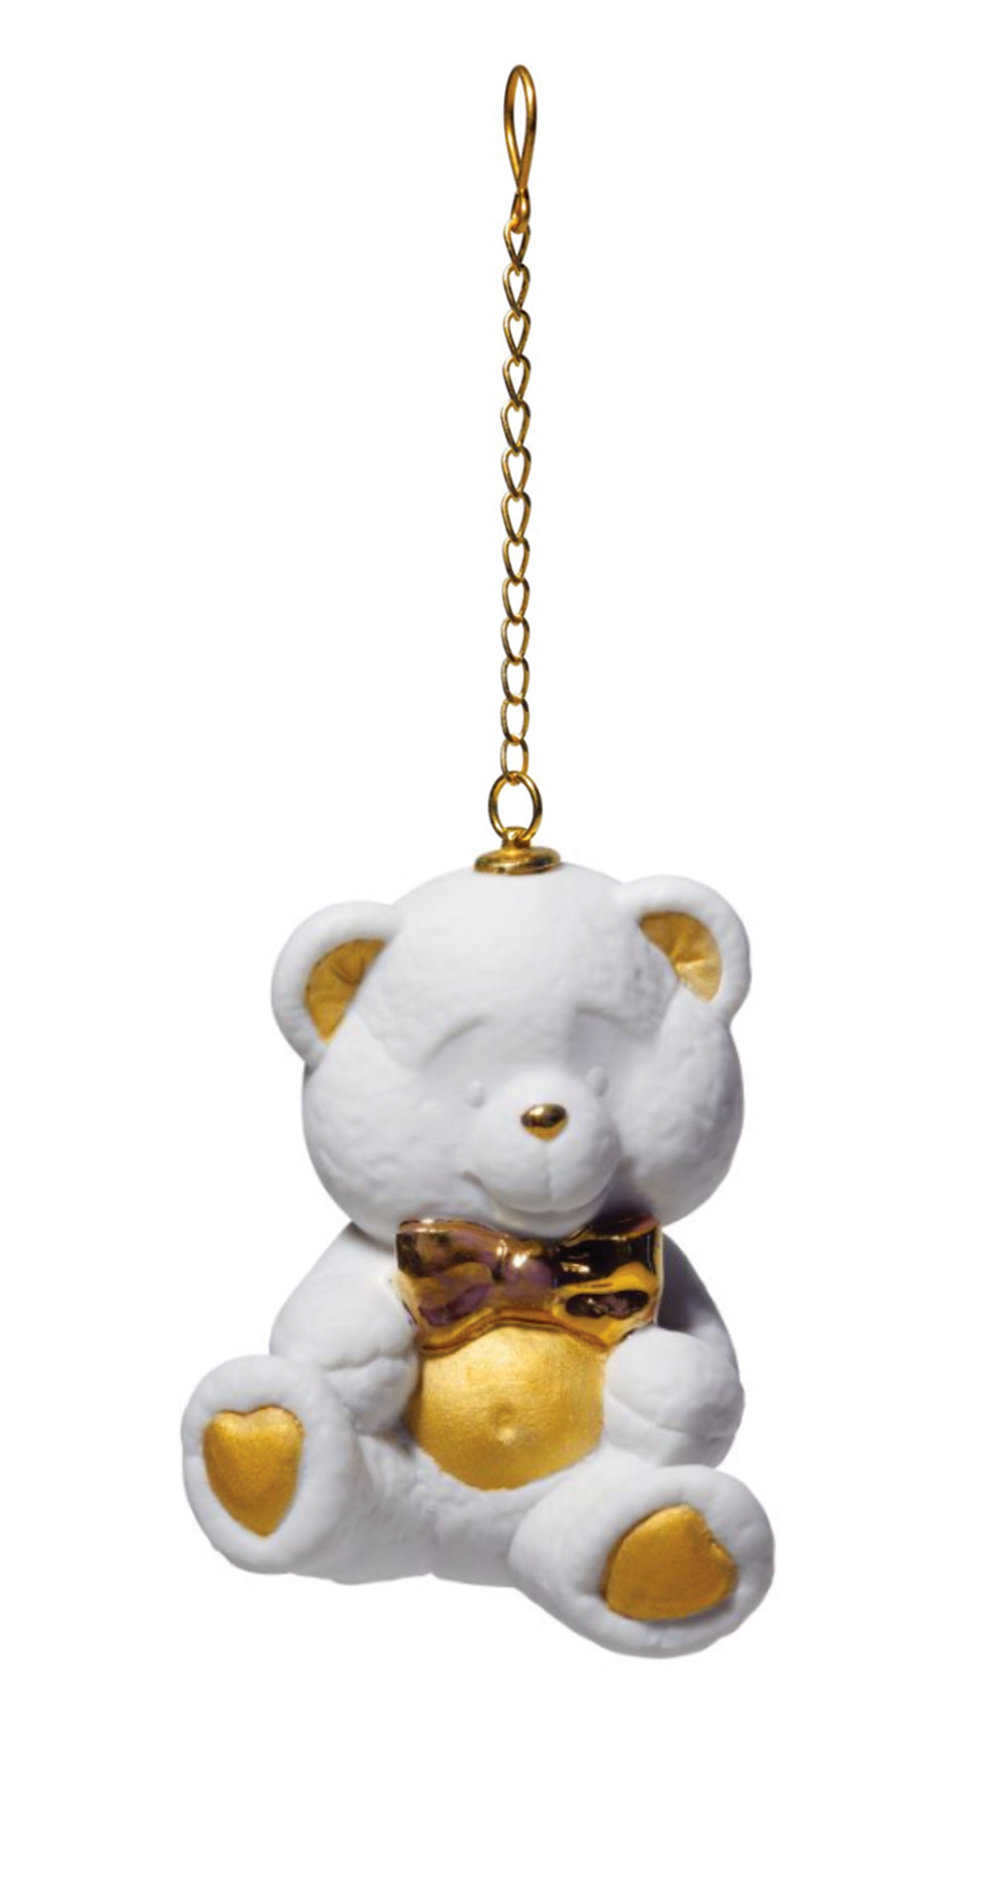 Lladró‭ ‬Teddy Bear Christmas Ornament